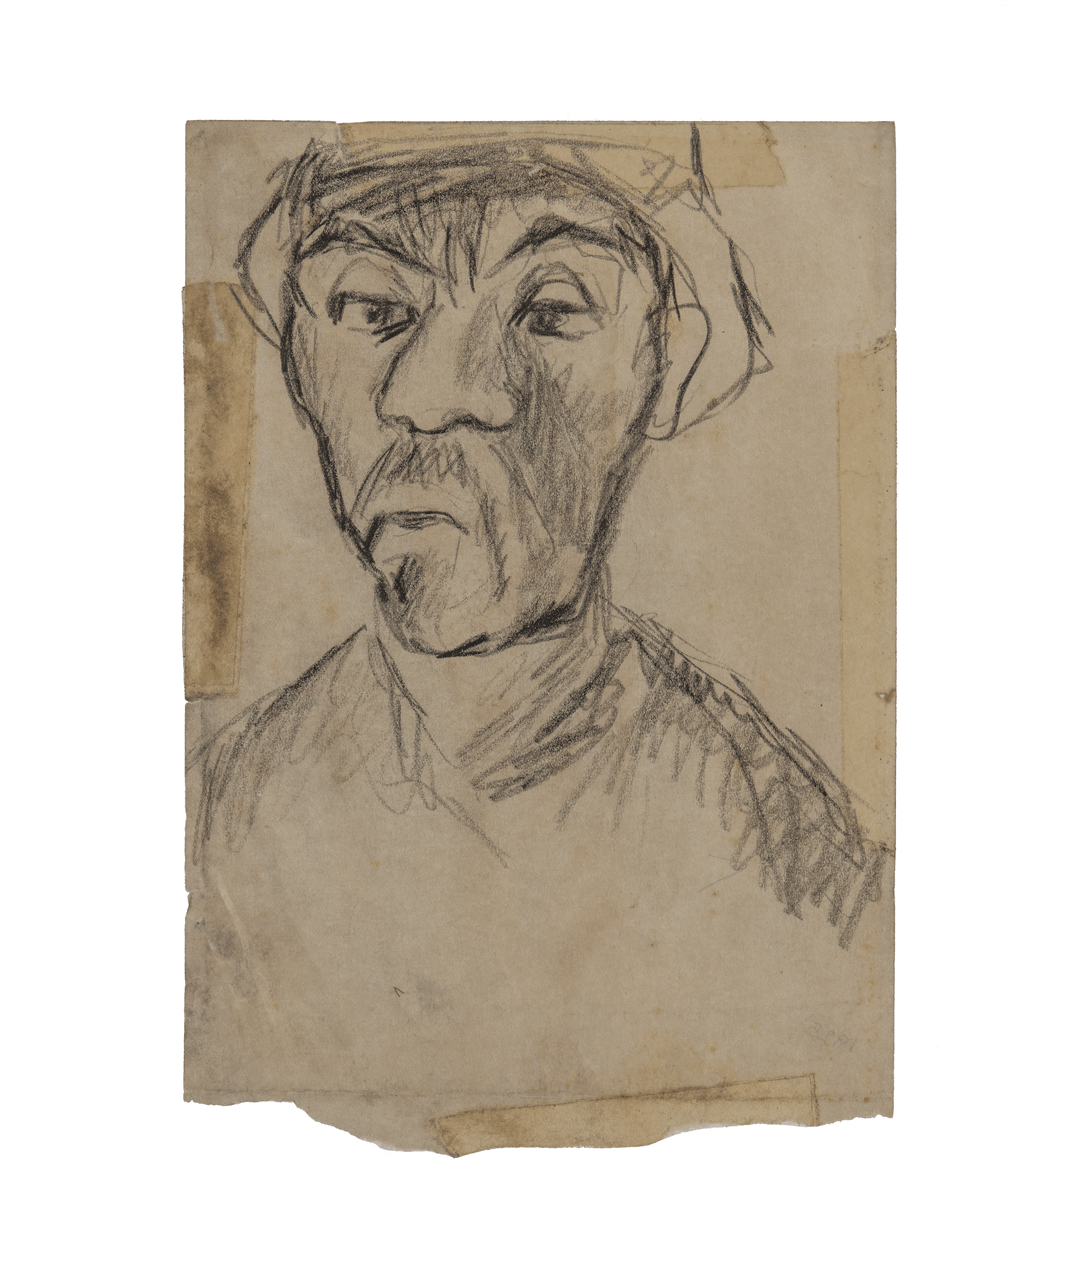 An American Early 20th Century Profile Portrait Sketch